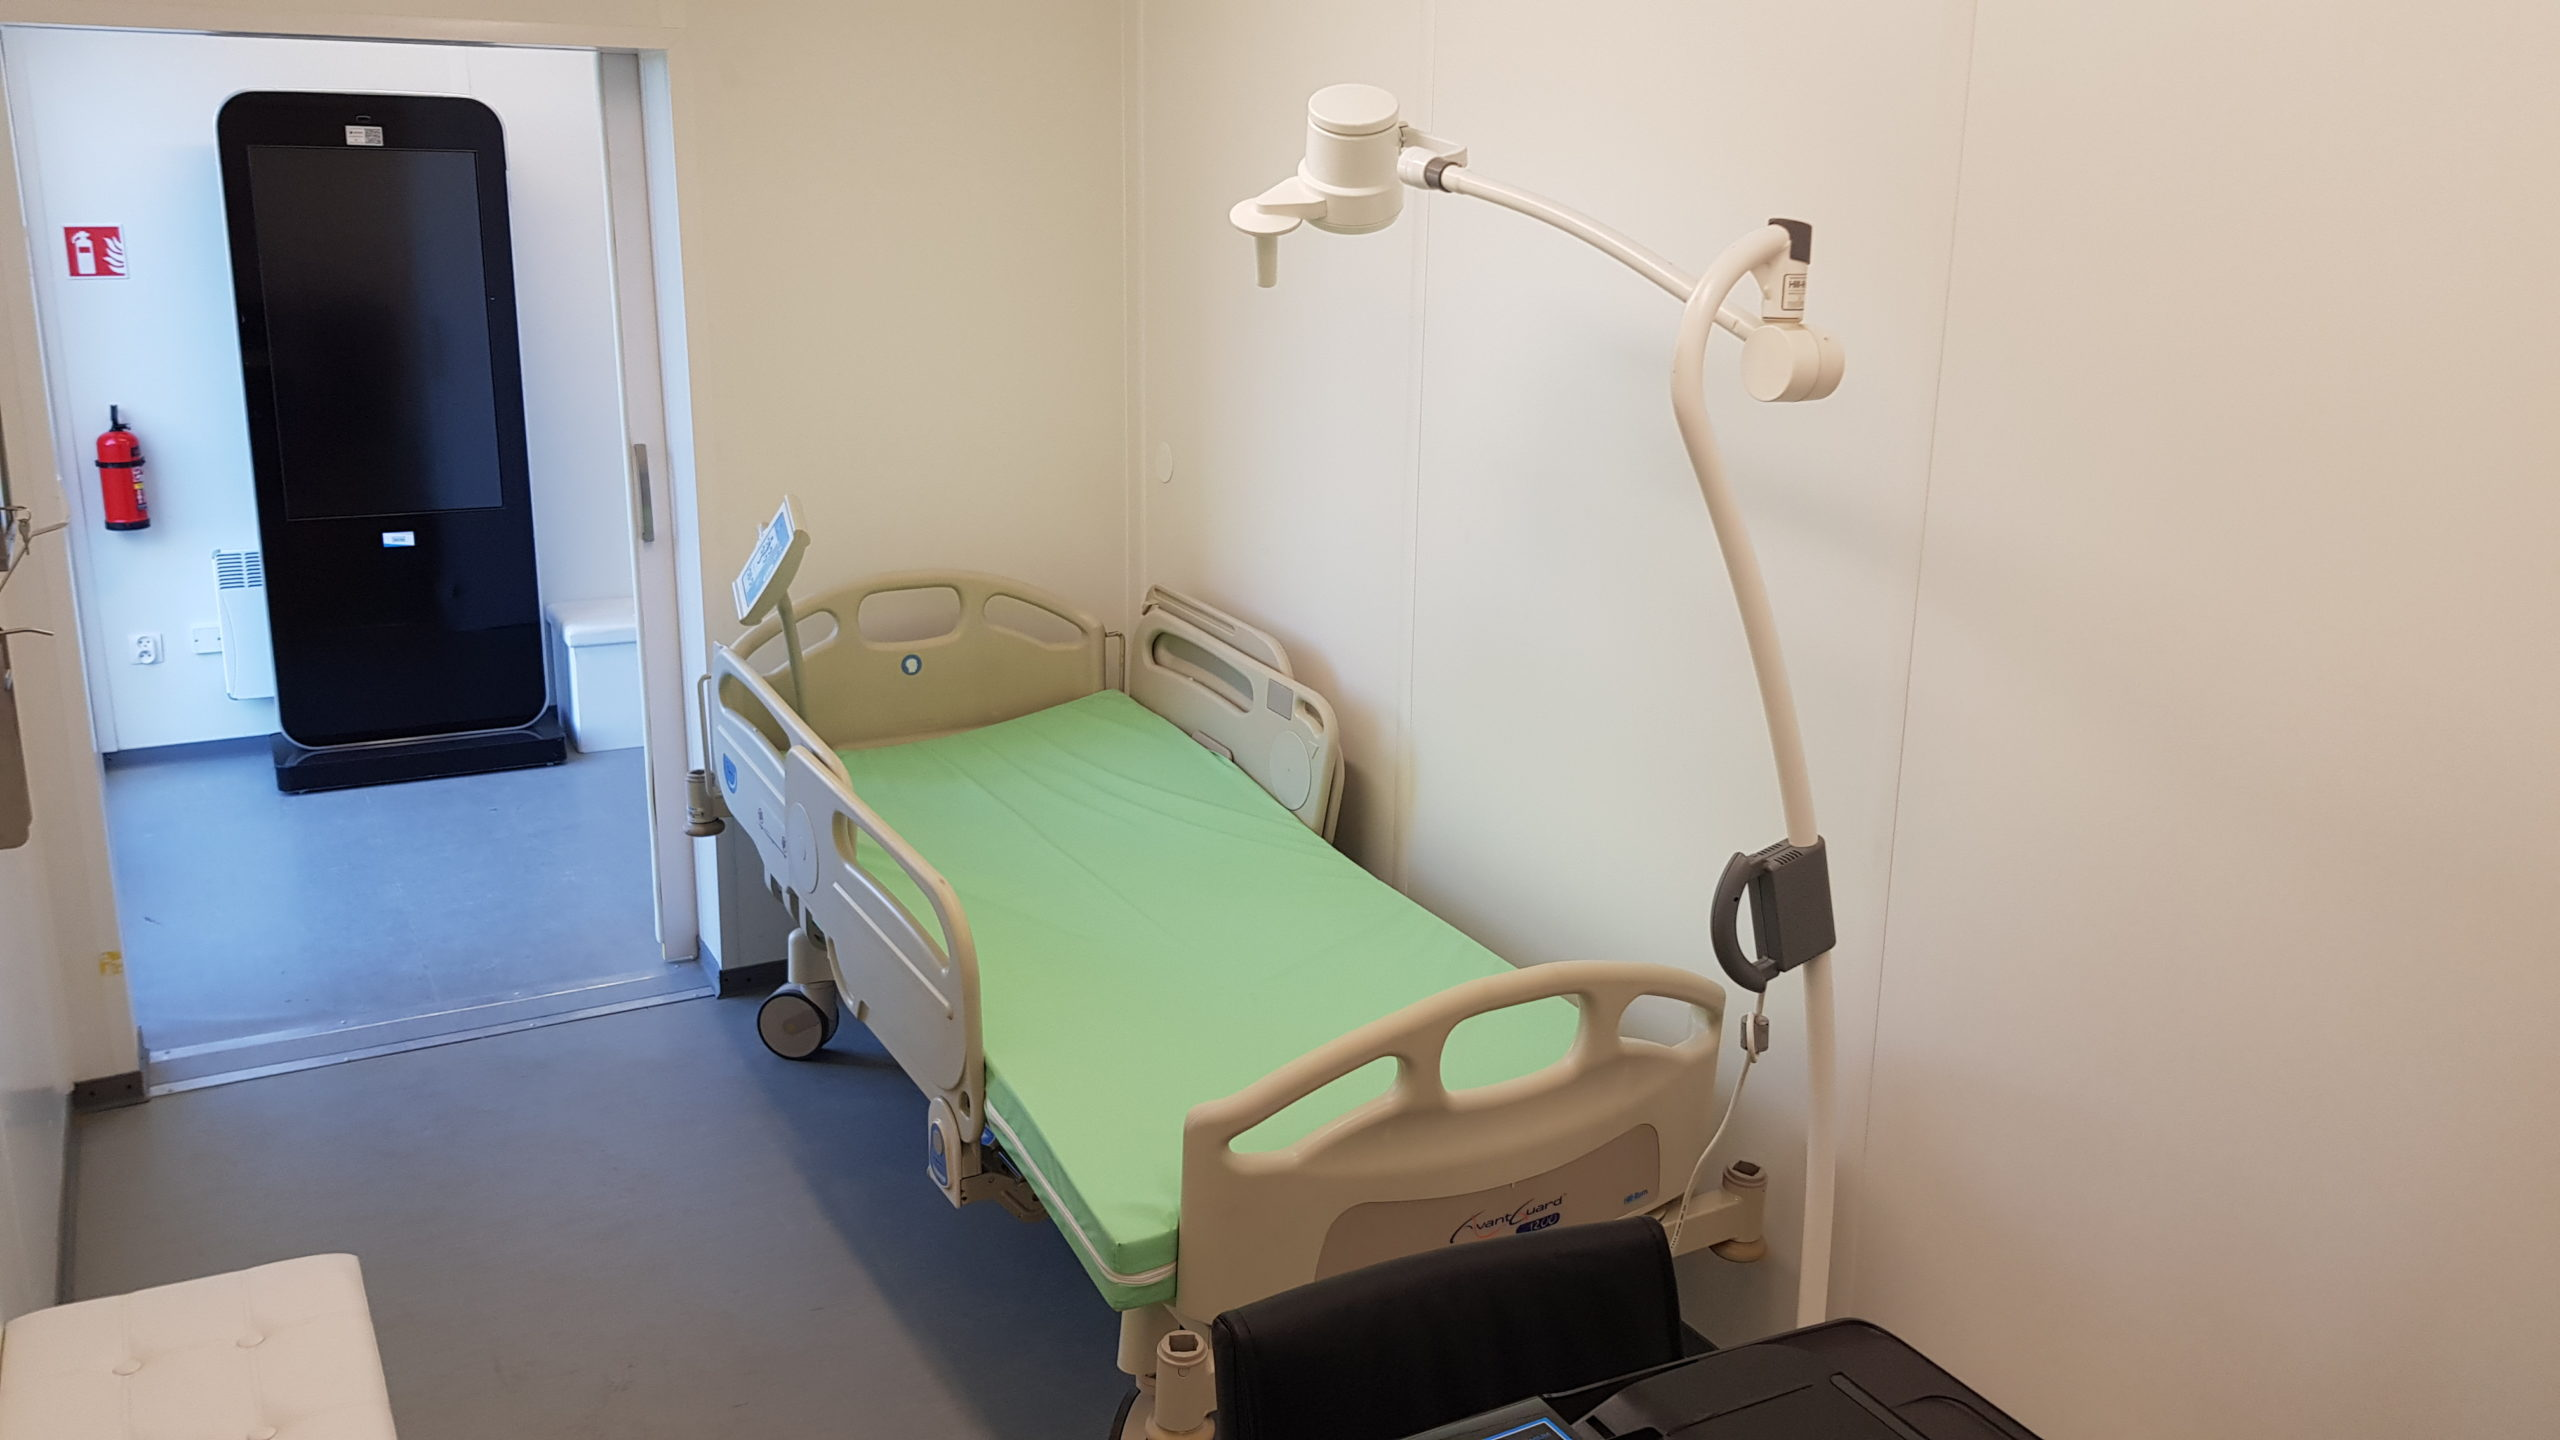 DIAGNOSTIC ROOMS